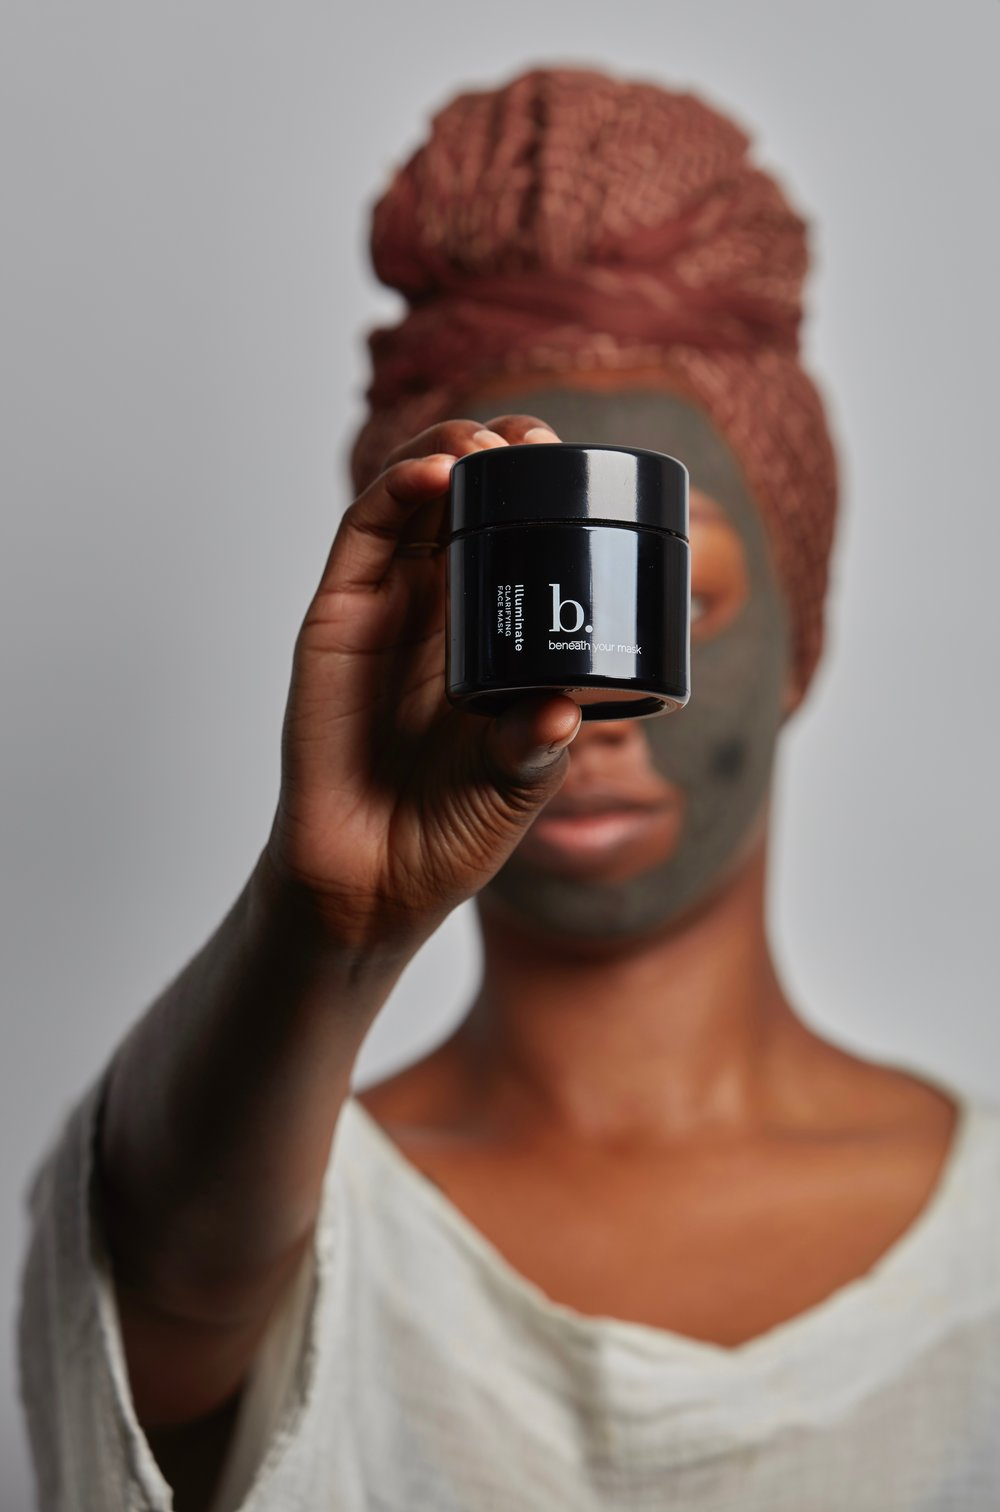 MelninASS Founder Dominique Drakeford trying the Clarifying Face Mask